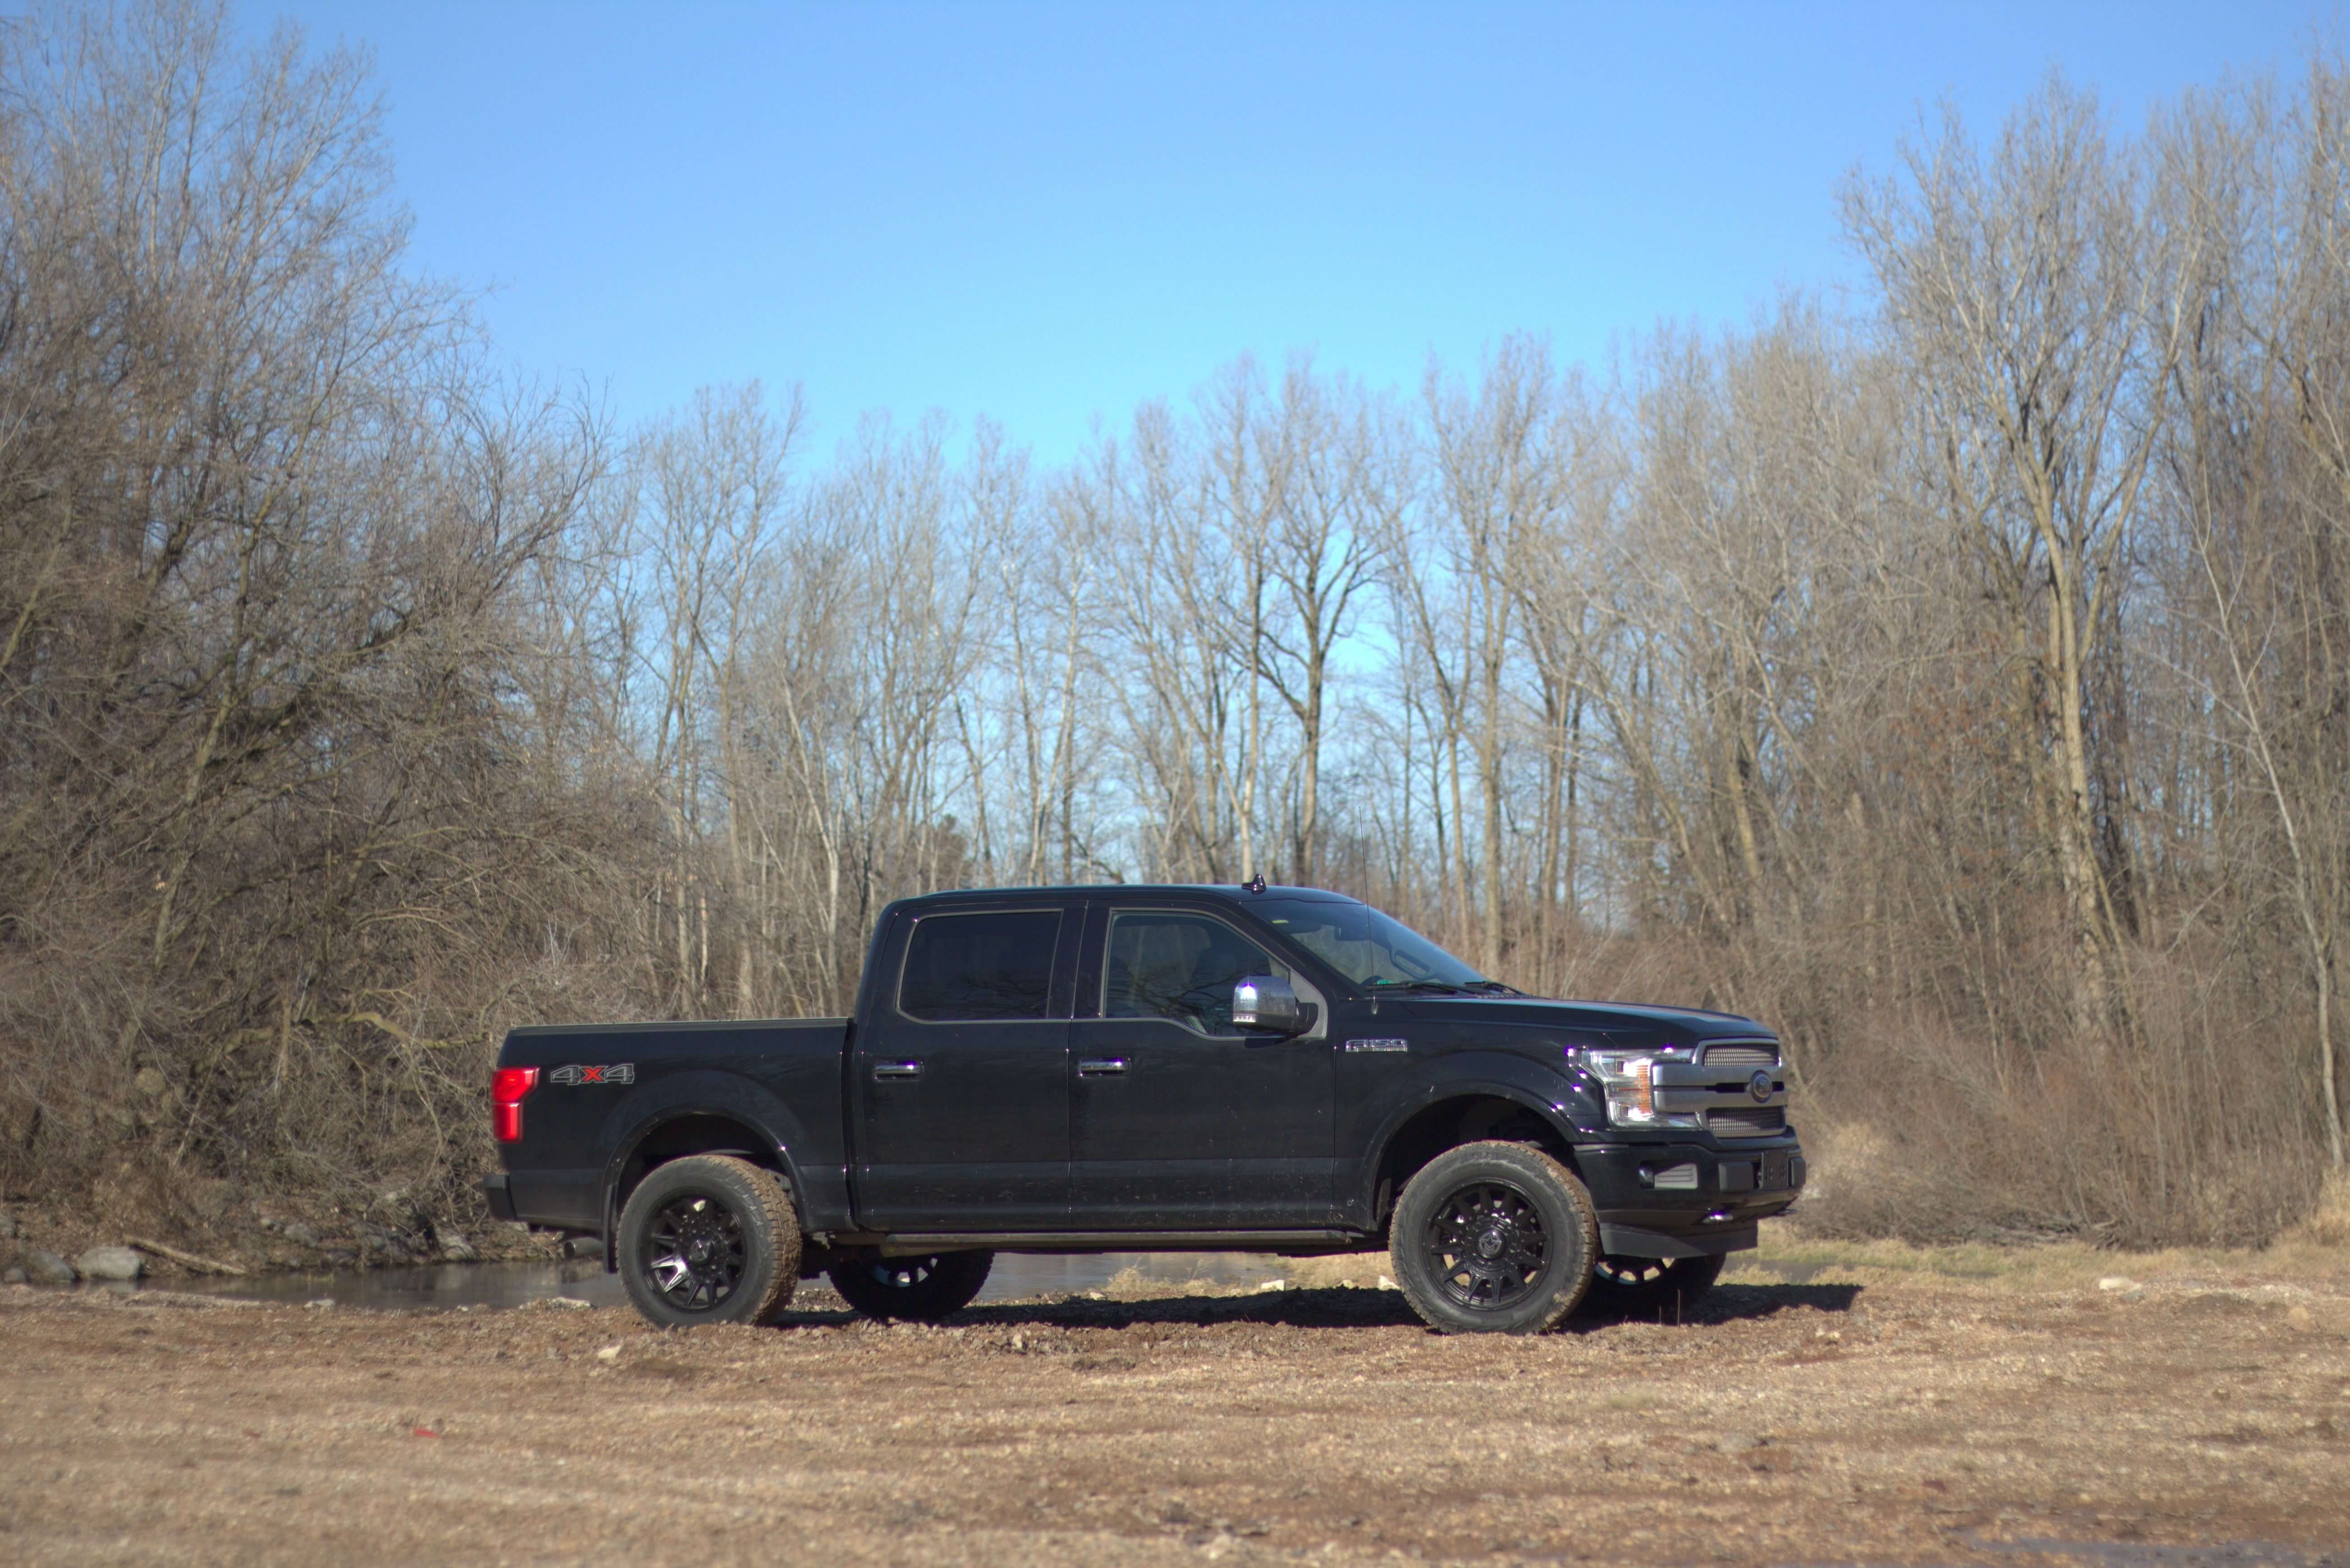 The Anthem Off-Road Liberty